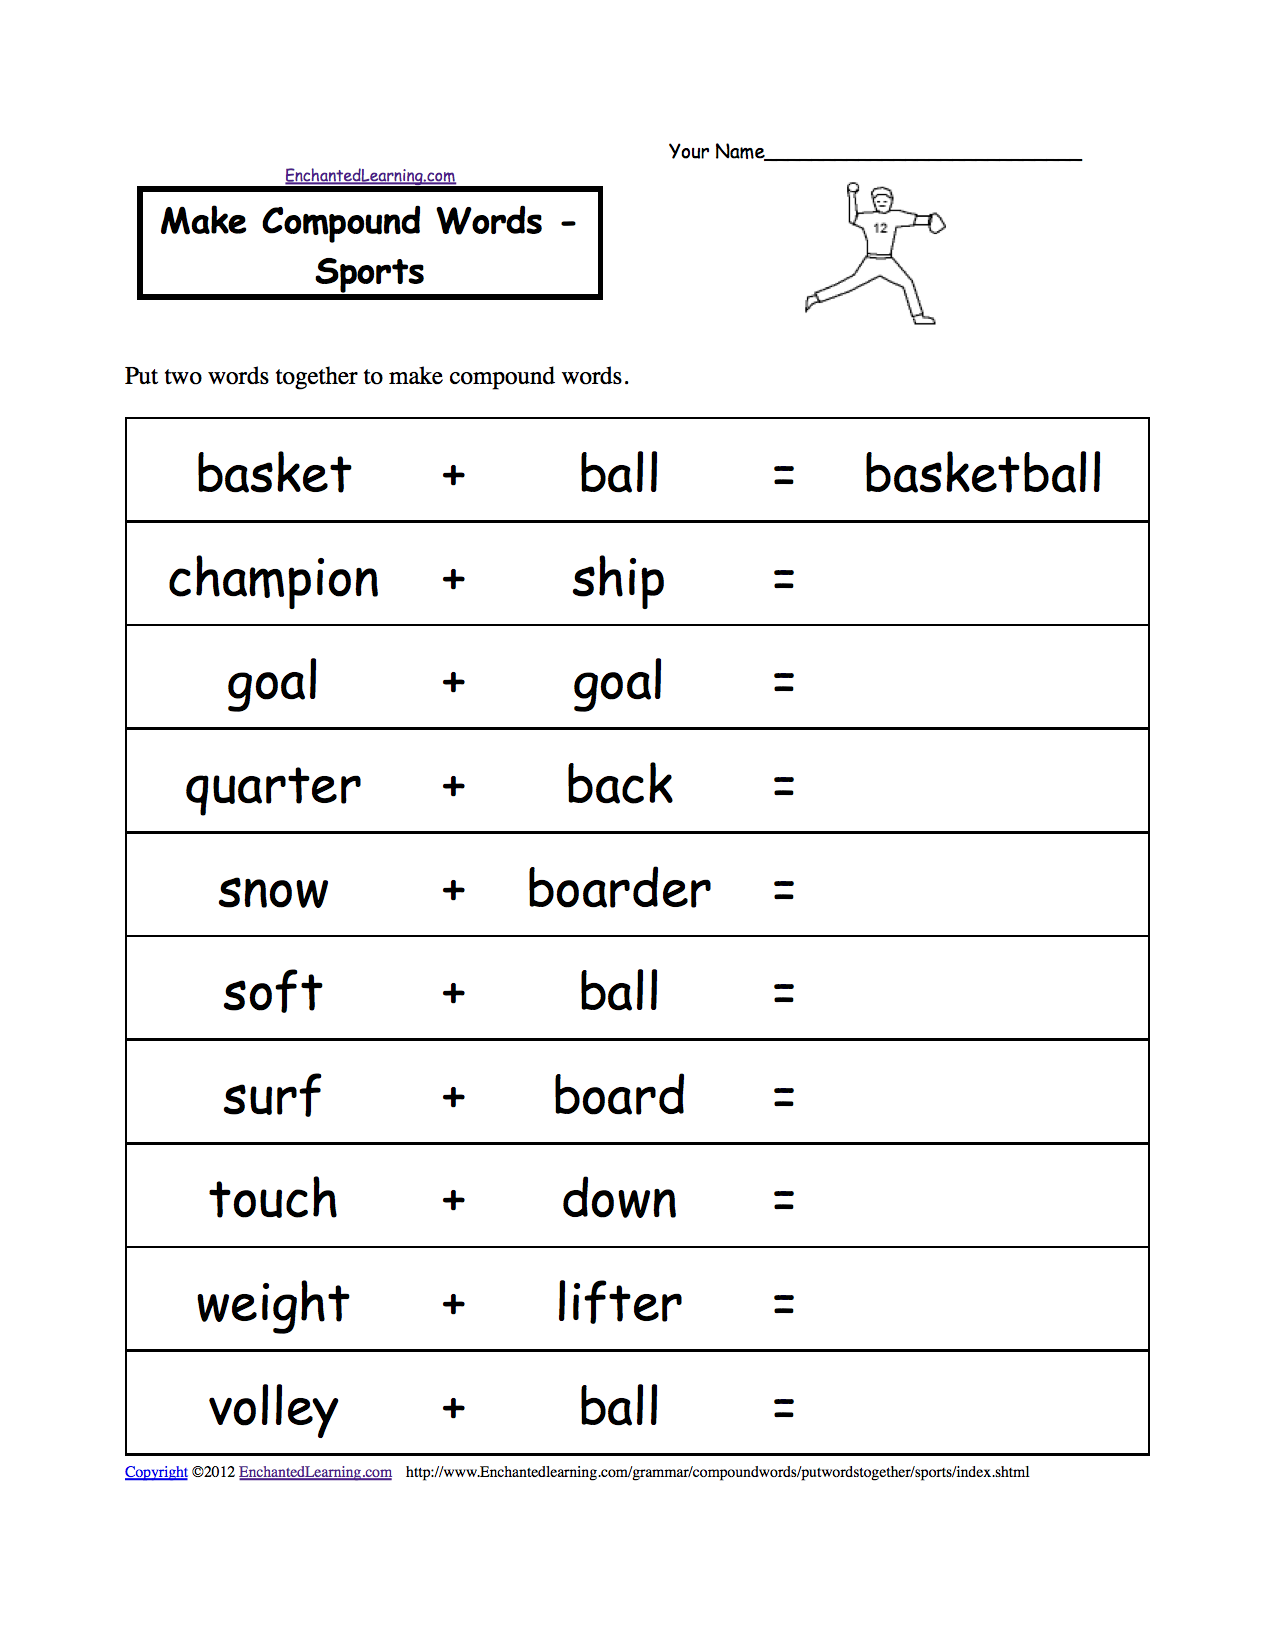 Sport Worksheets For Kids | Make Compound Words: Sports